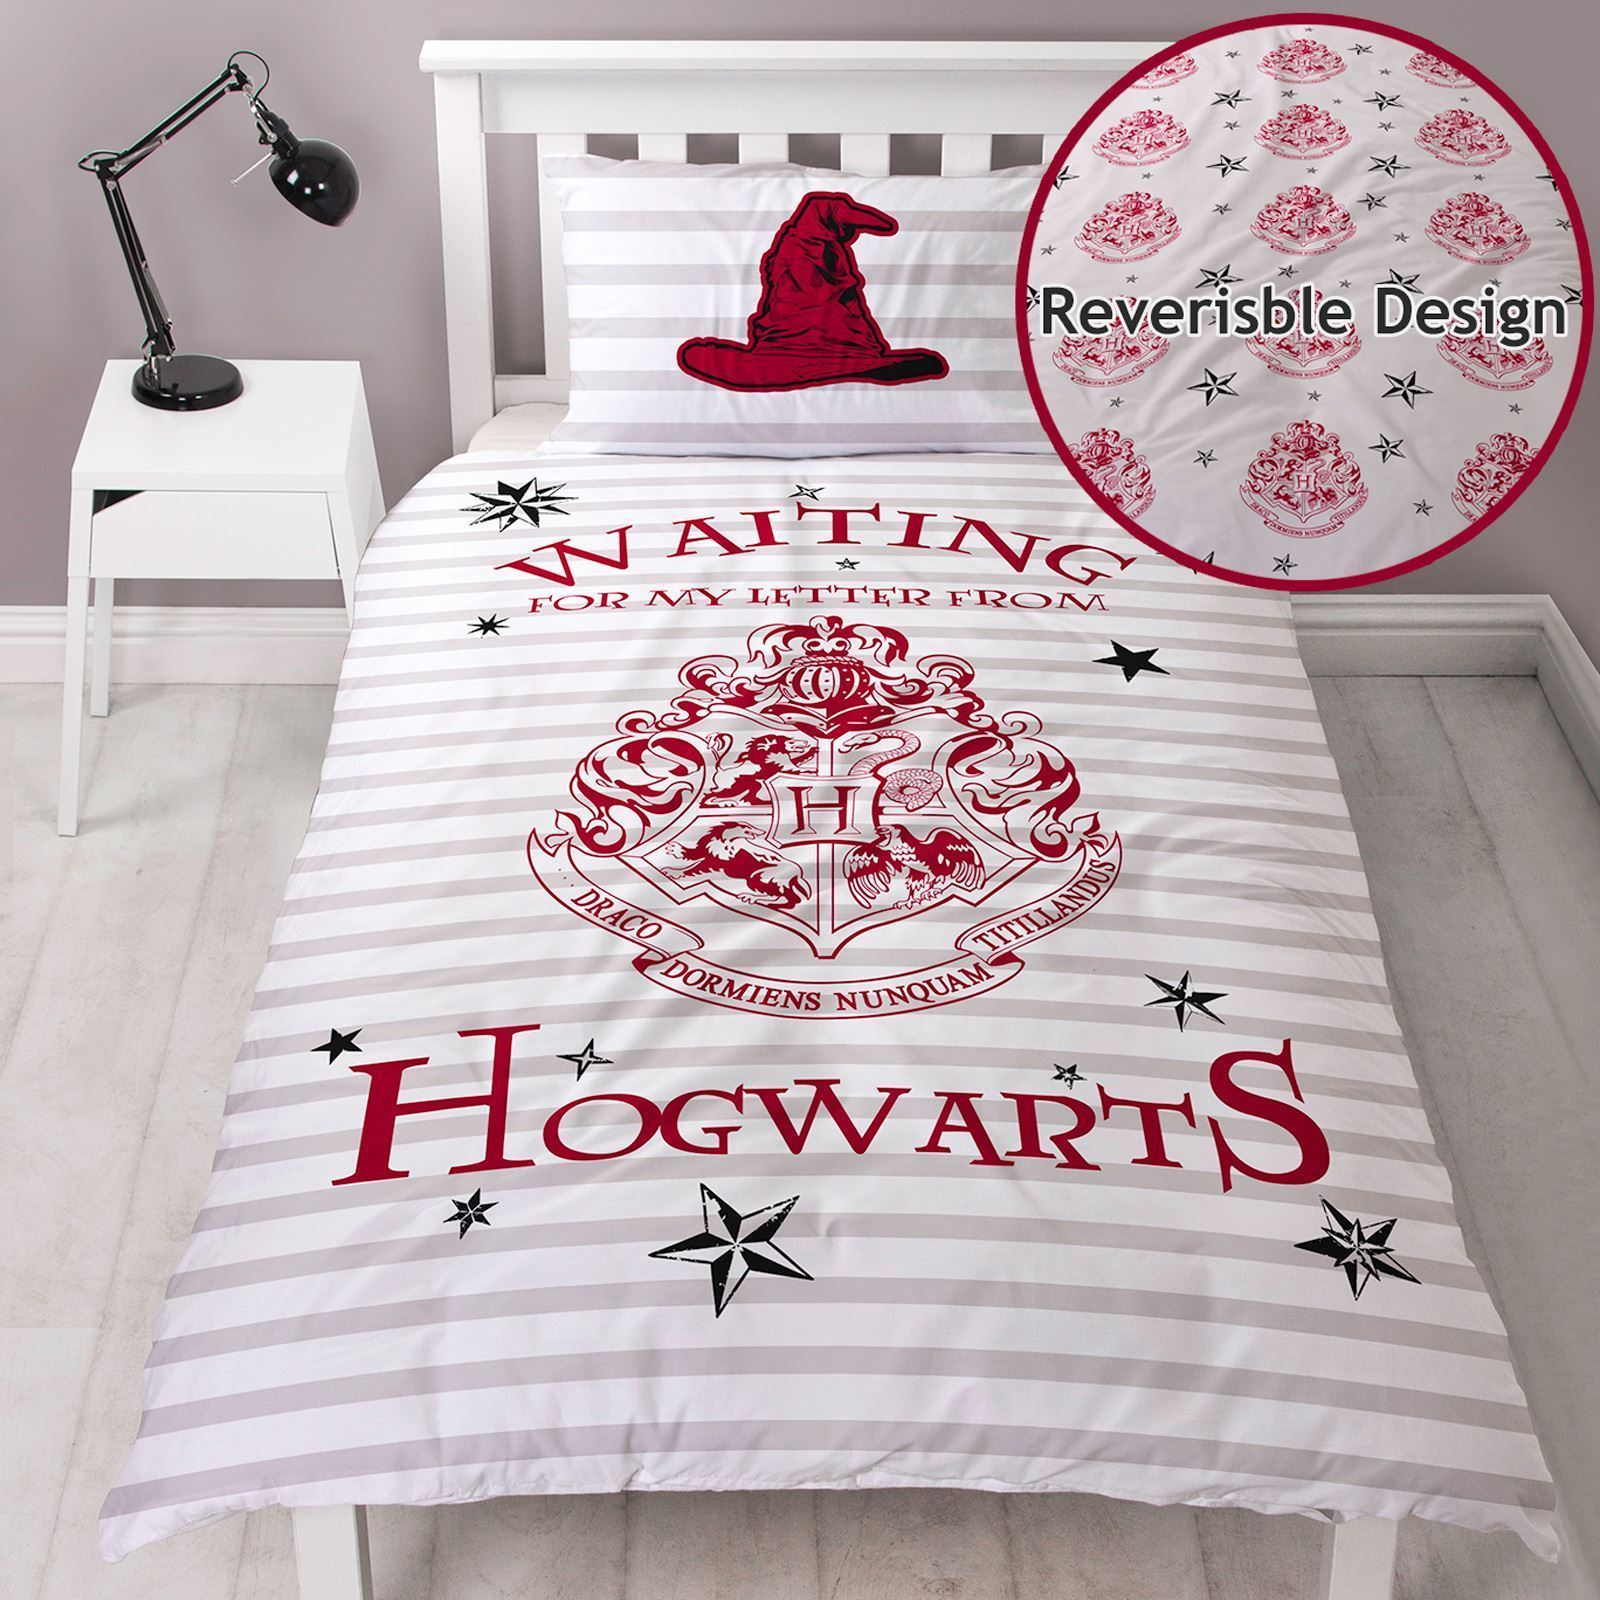 Official-Harry-Potter-Licensed-Duvet-Covers-Single-Double-Muggles-Hogwarts-Charm thumbnail 25